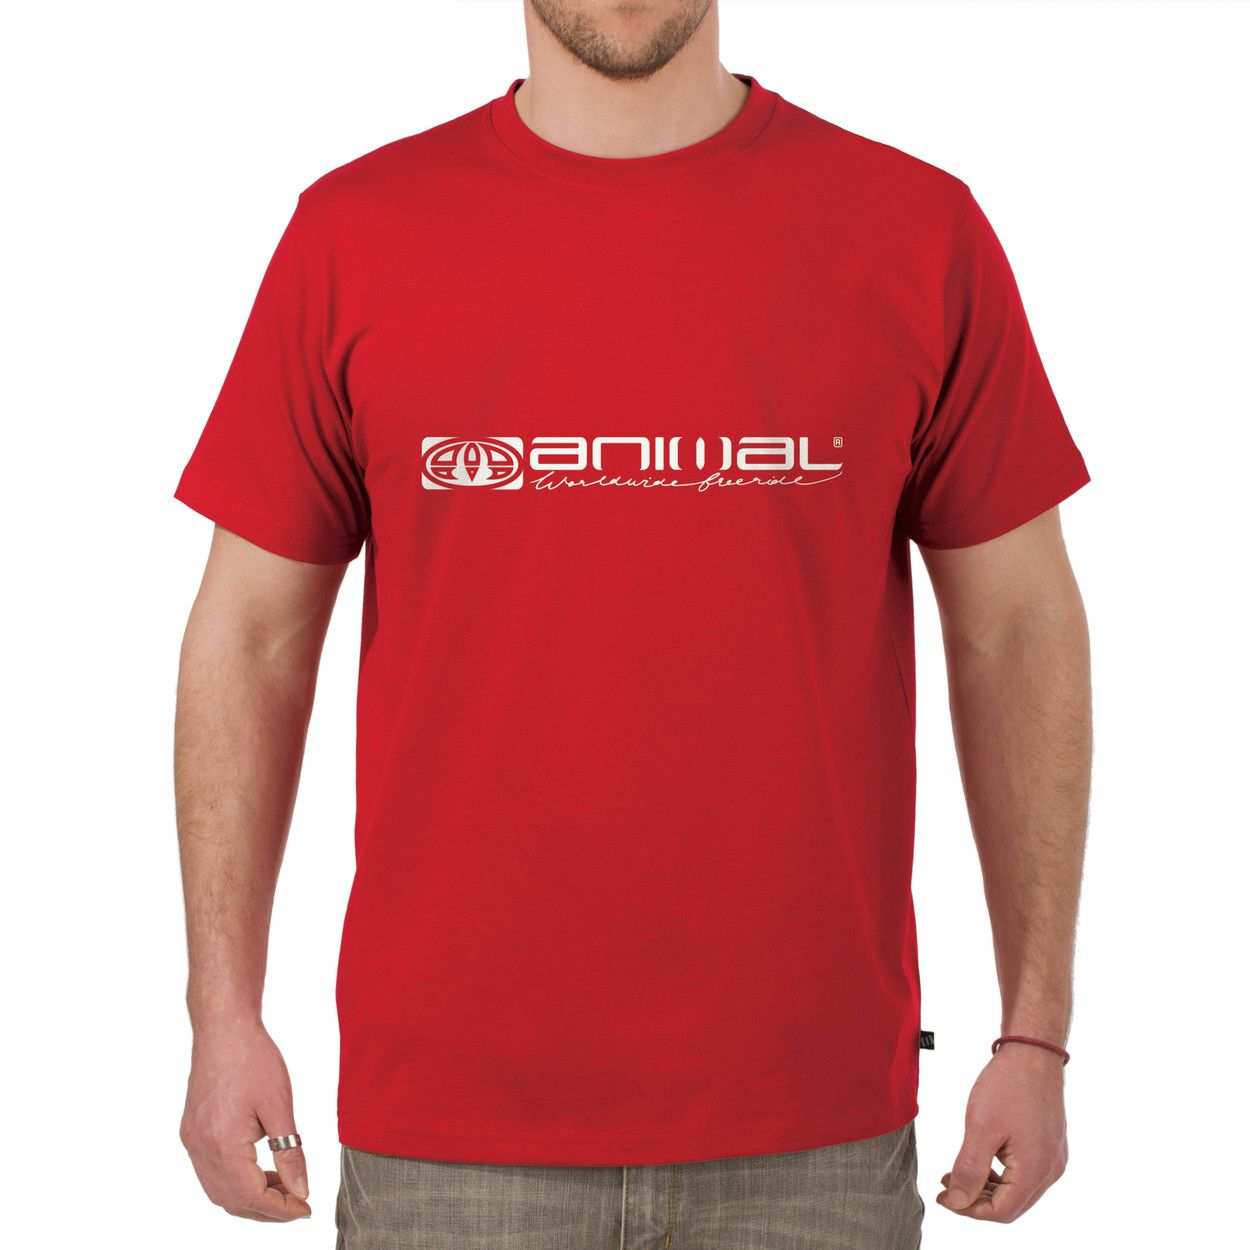 Animal Mens Animal Mens lairg t-shirt, Red 166077838 product image